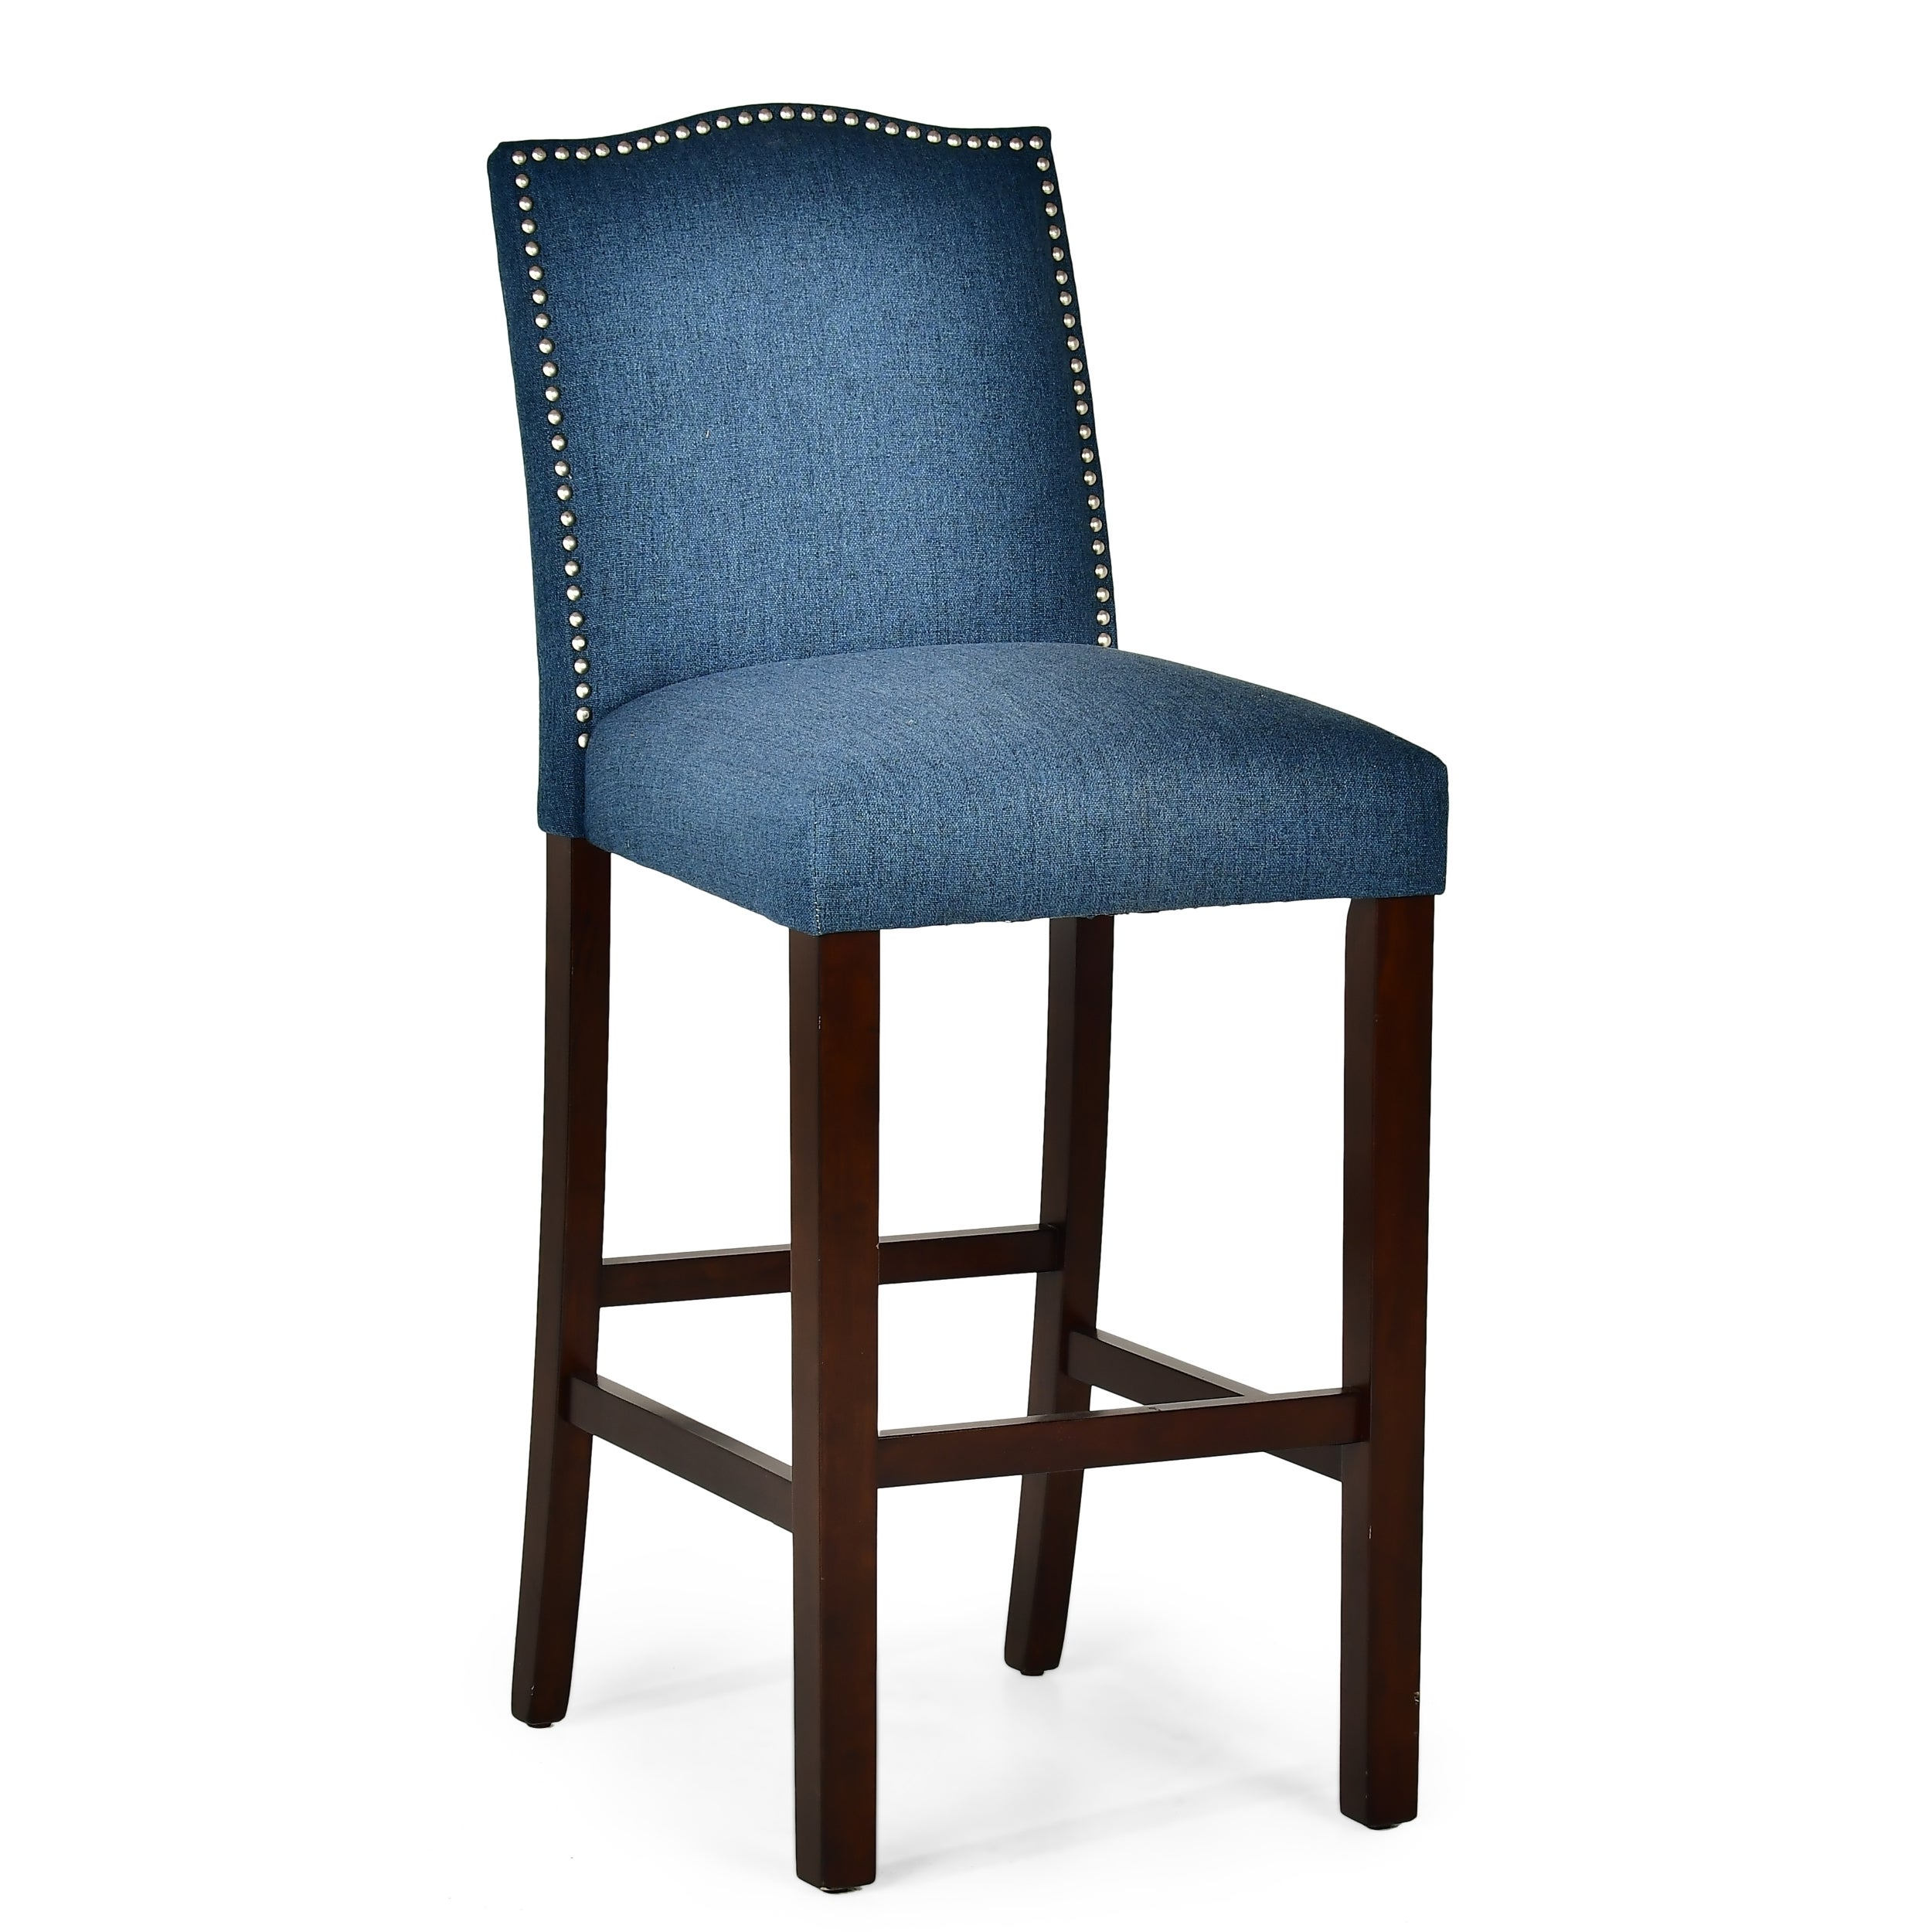 Shop Espen Counter Stool By Greyson Living (Set of 2) - On Sale - Free  Shipping Today - Overstock.com - 19748271 ef7057f337